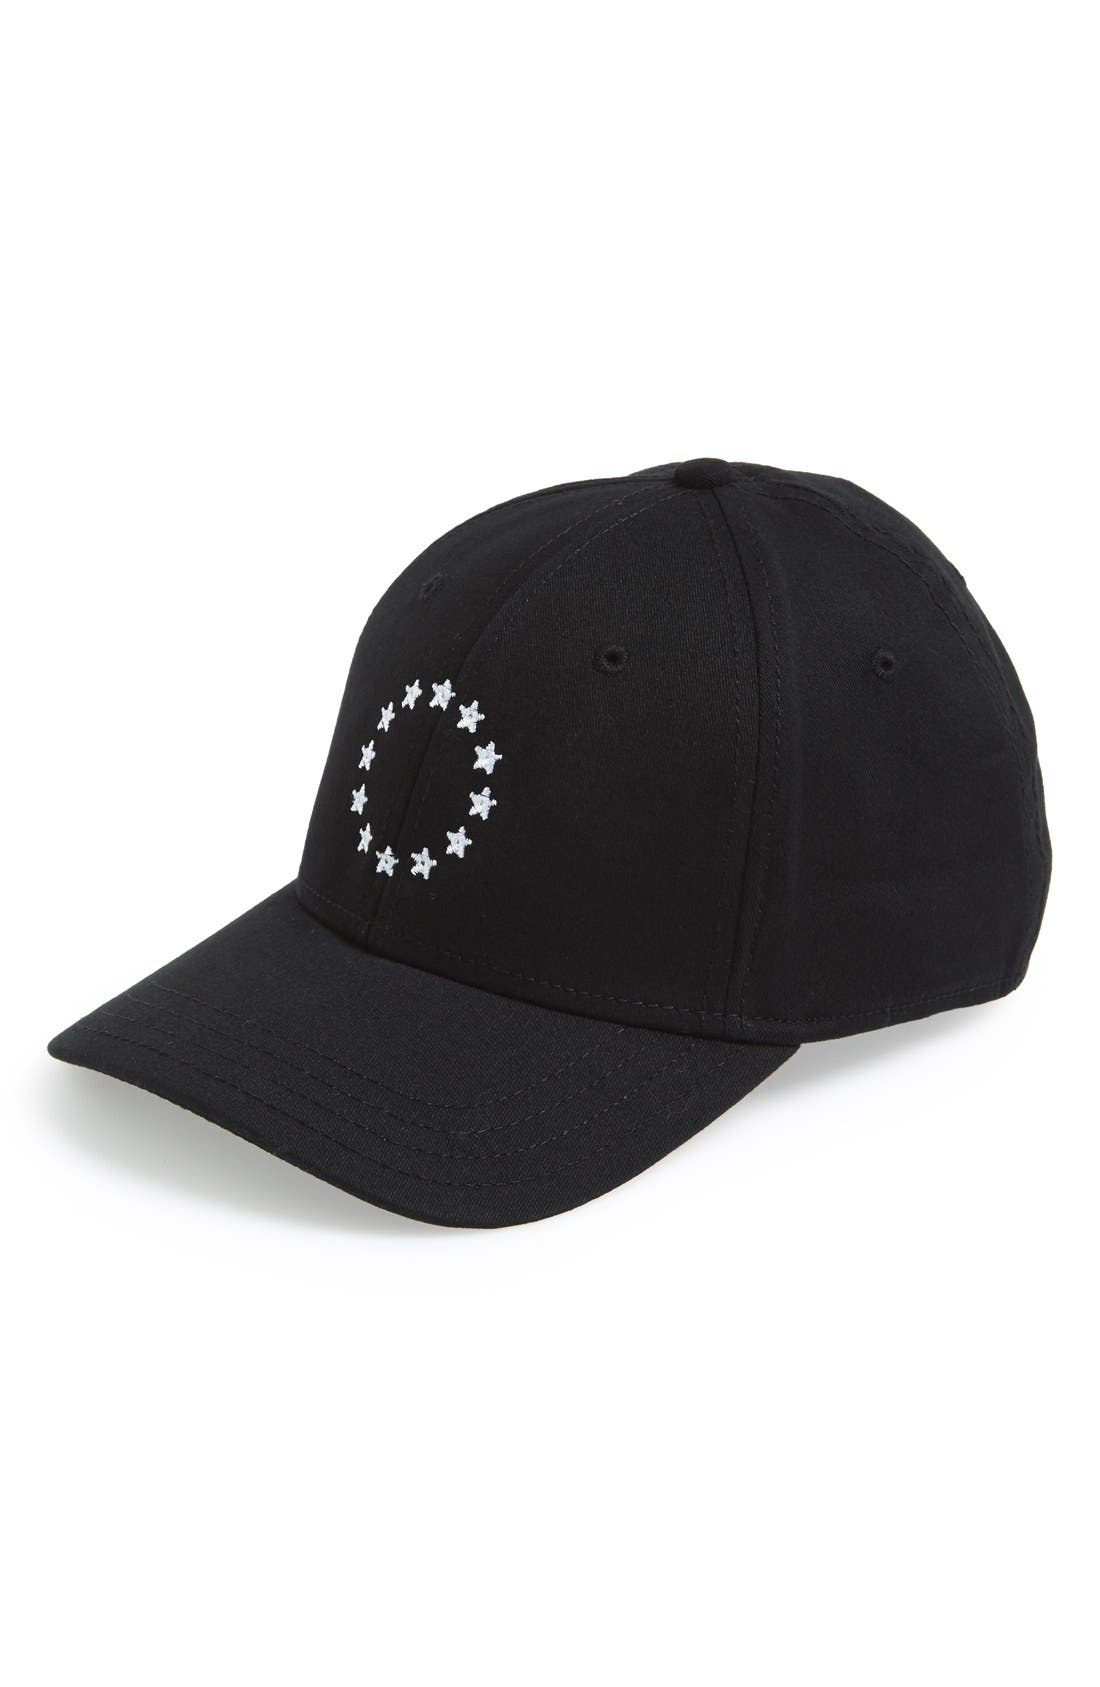 Main Image - Gents 'Collective' Baseball Cap